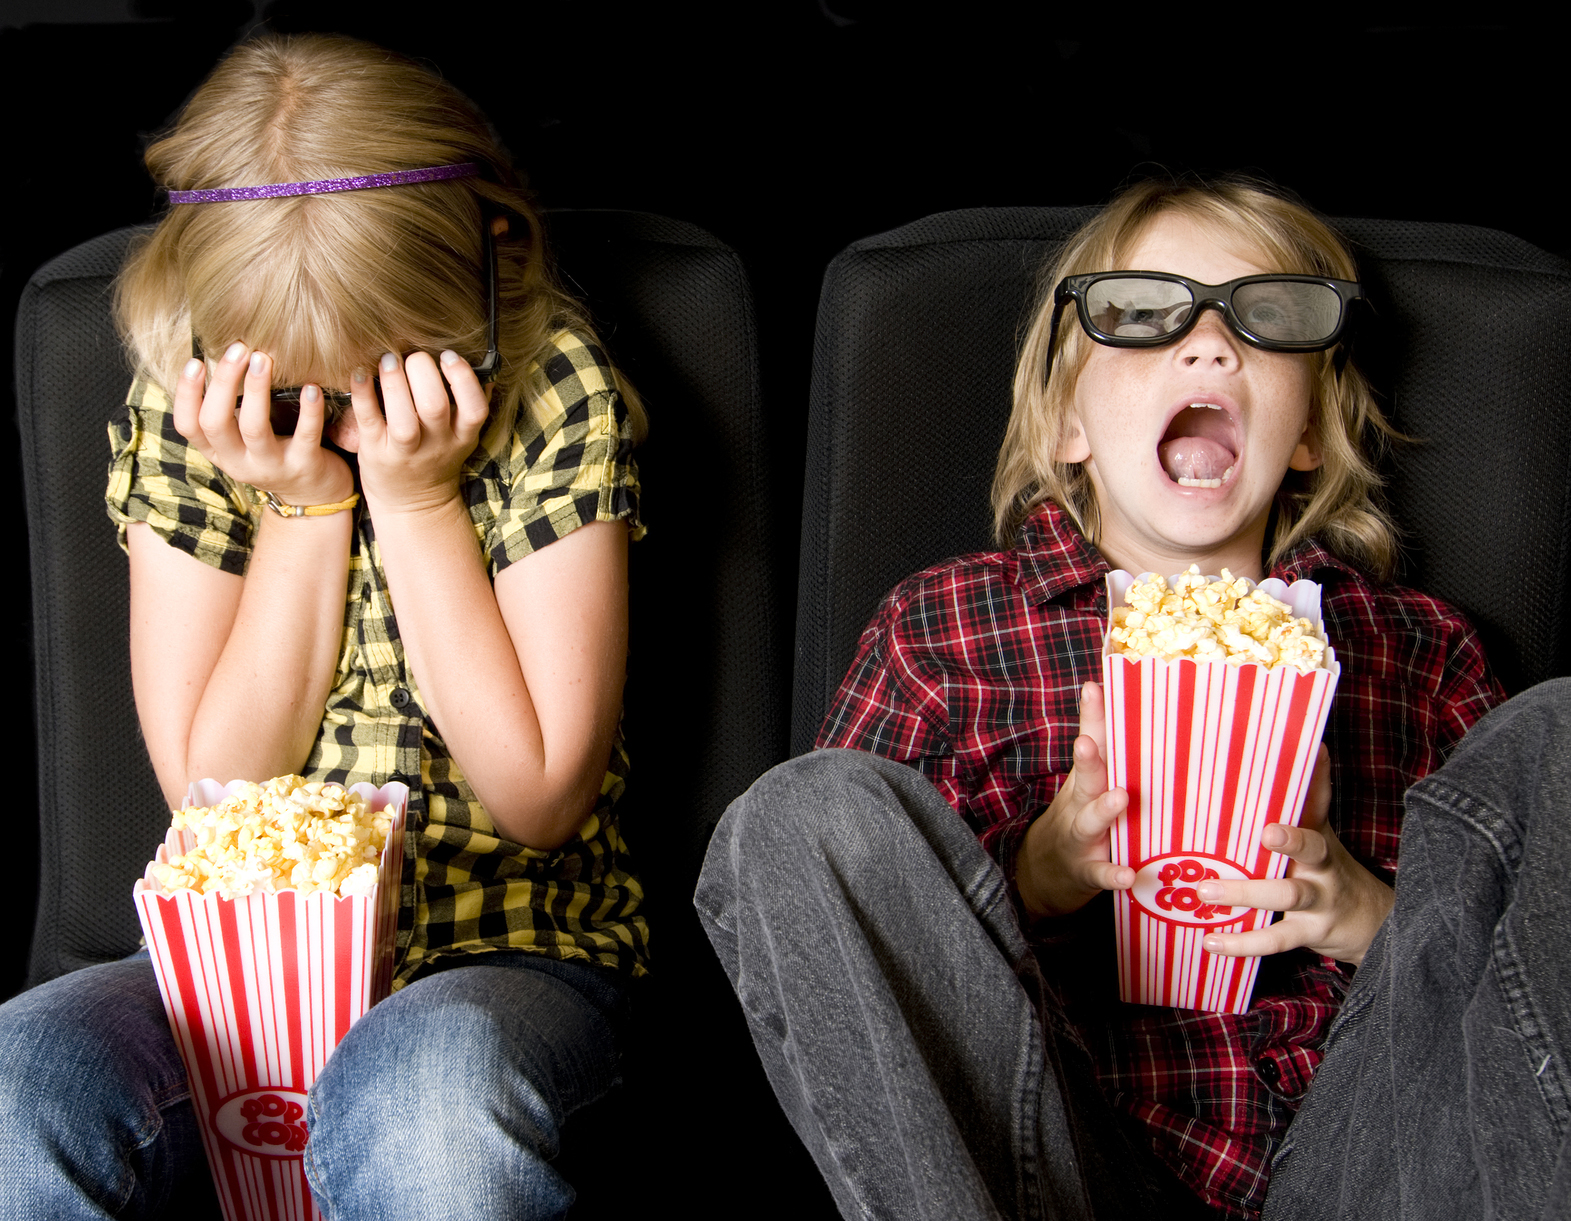 Two young girls watching a scary movie. (stock image)